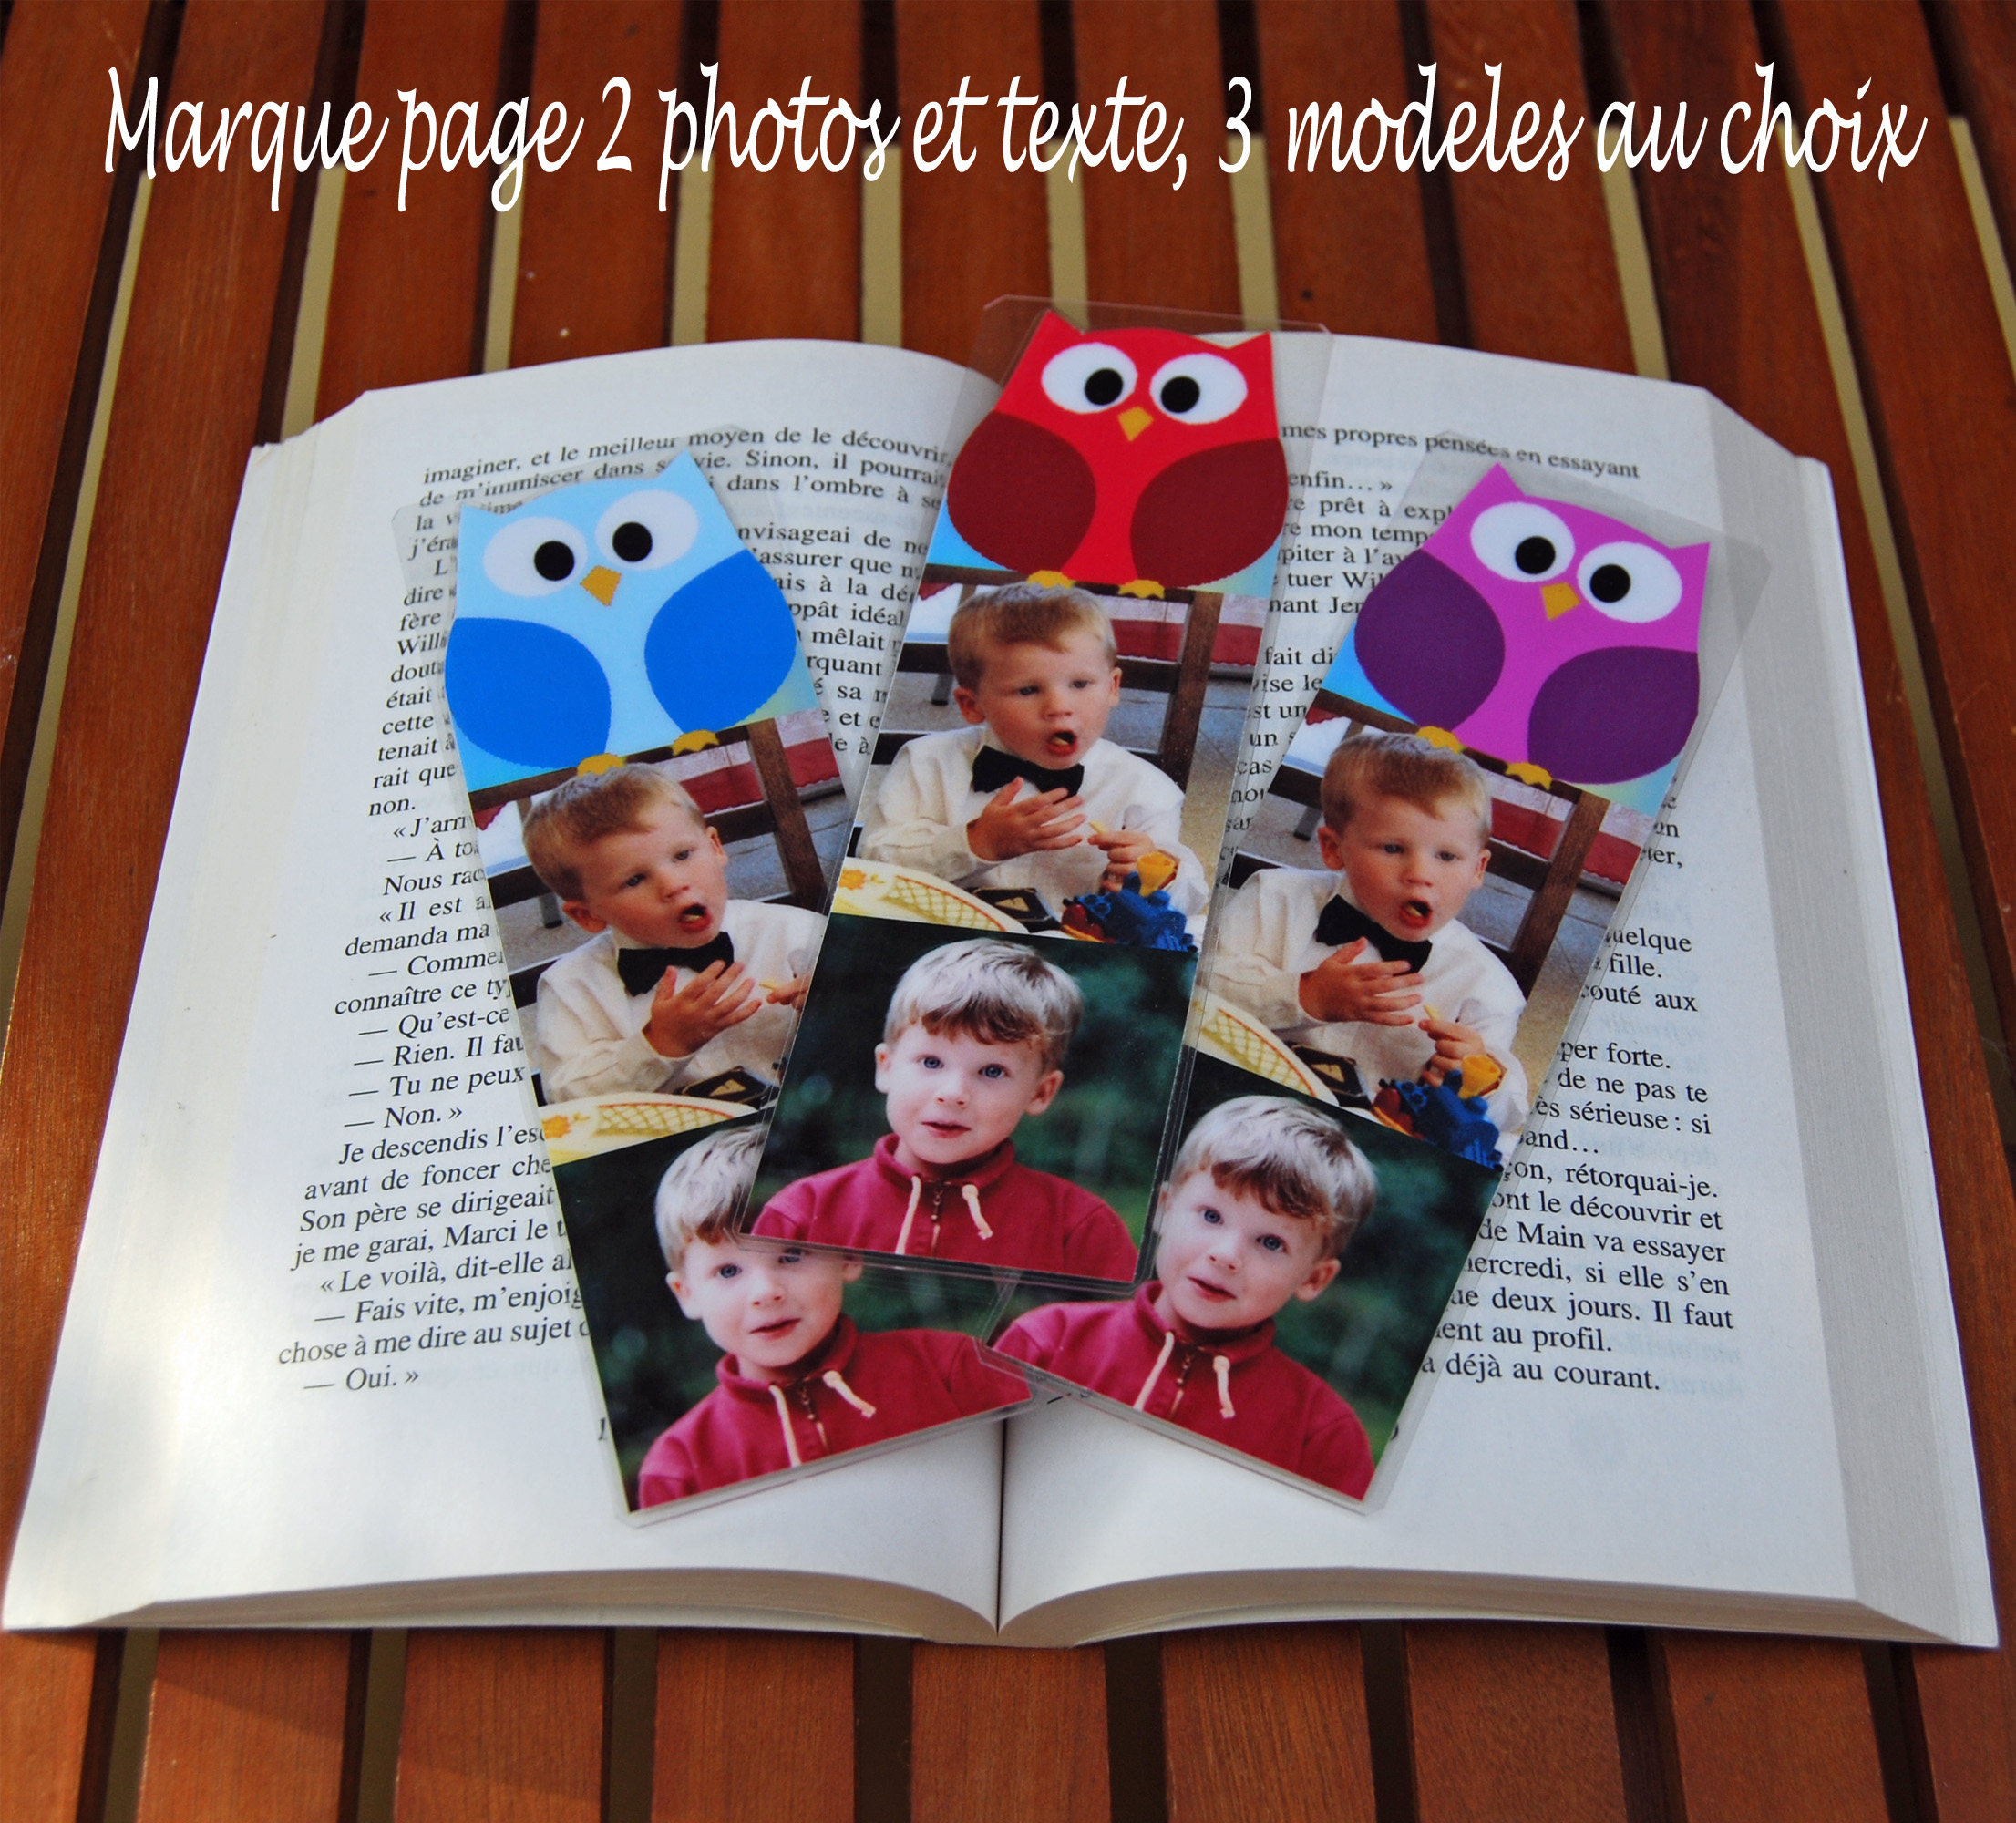 Marque Pages Personnalise Photo Modele Chouette